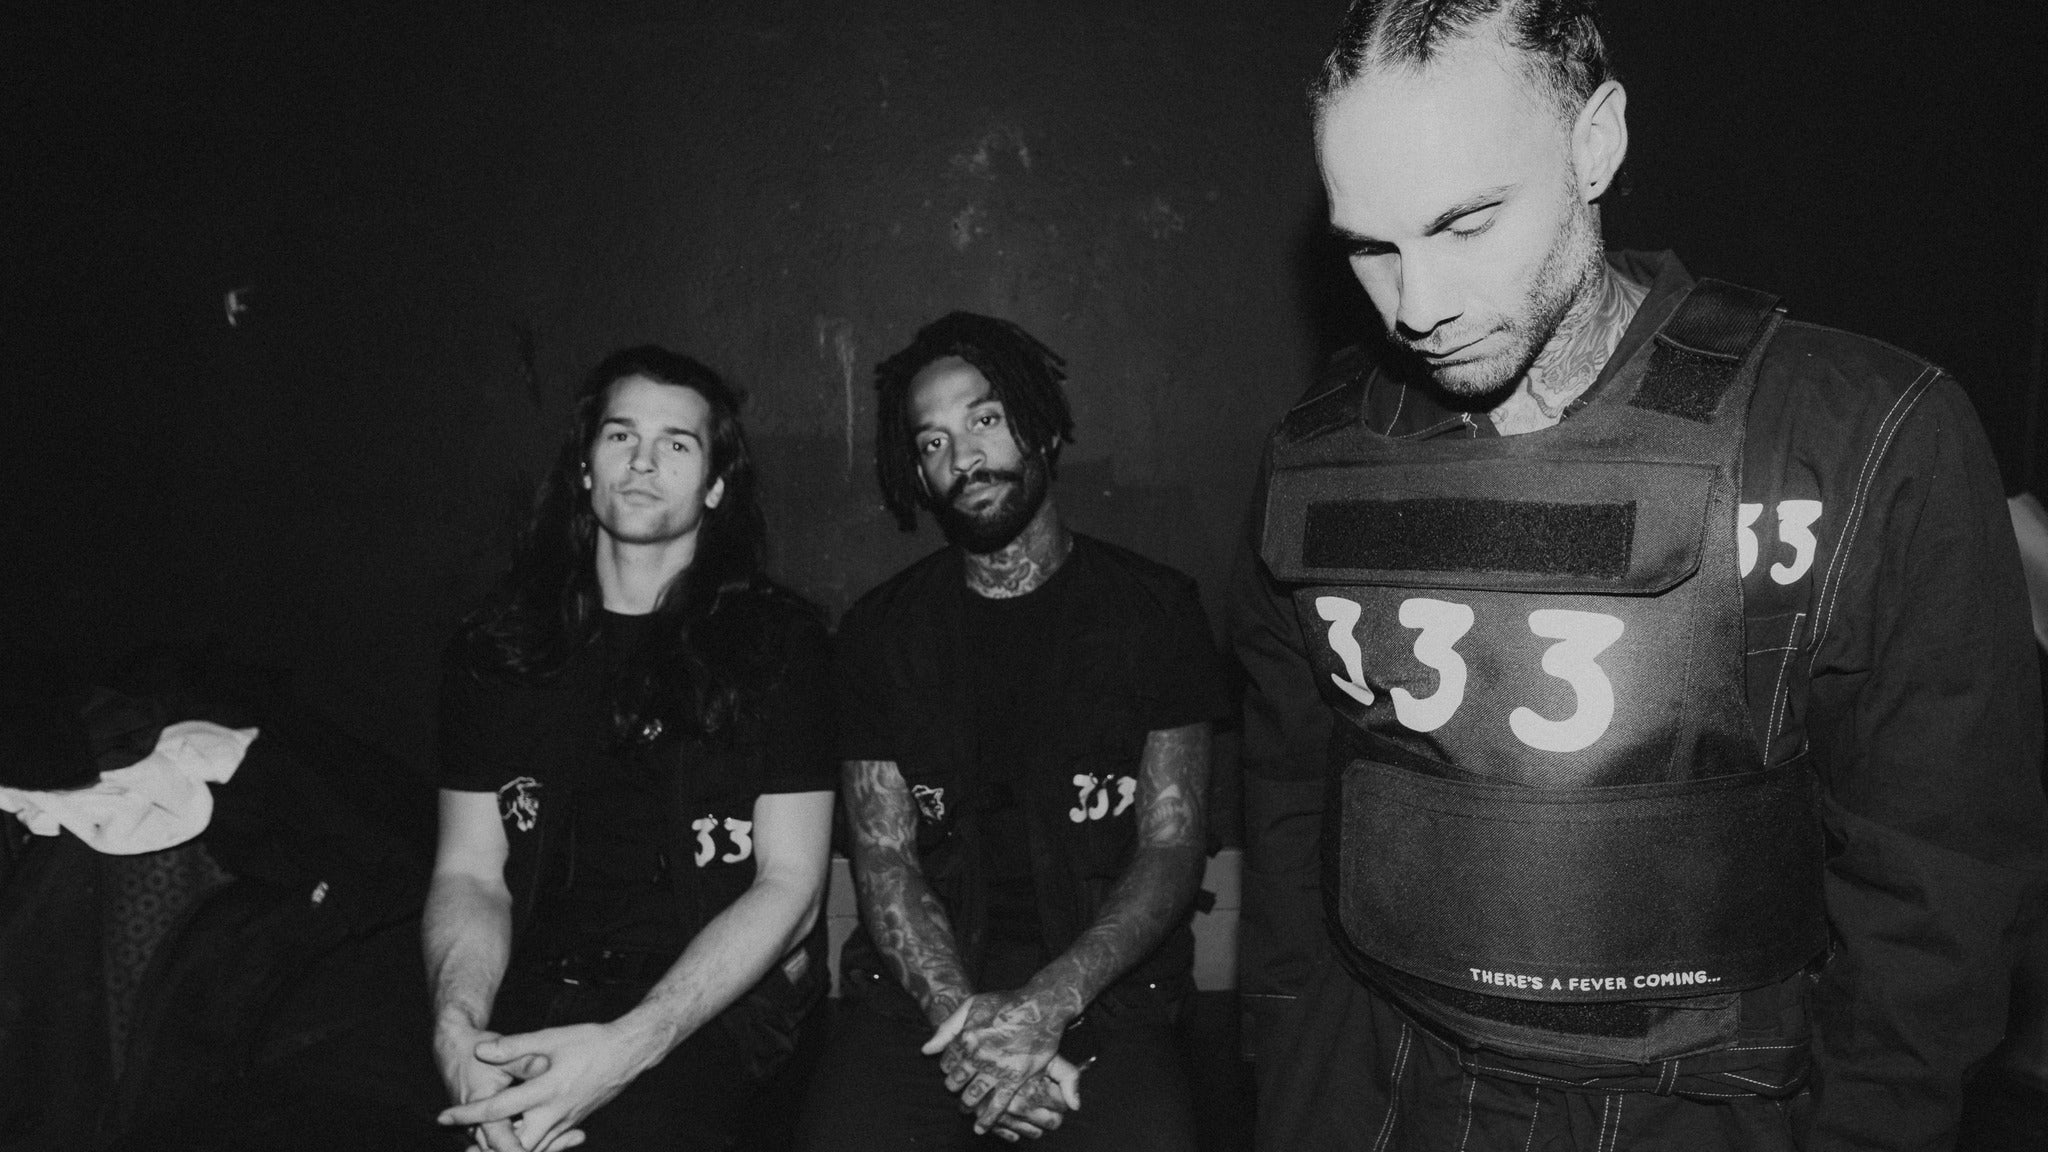 Cancelled - Fever 333